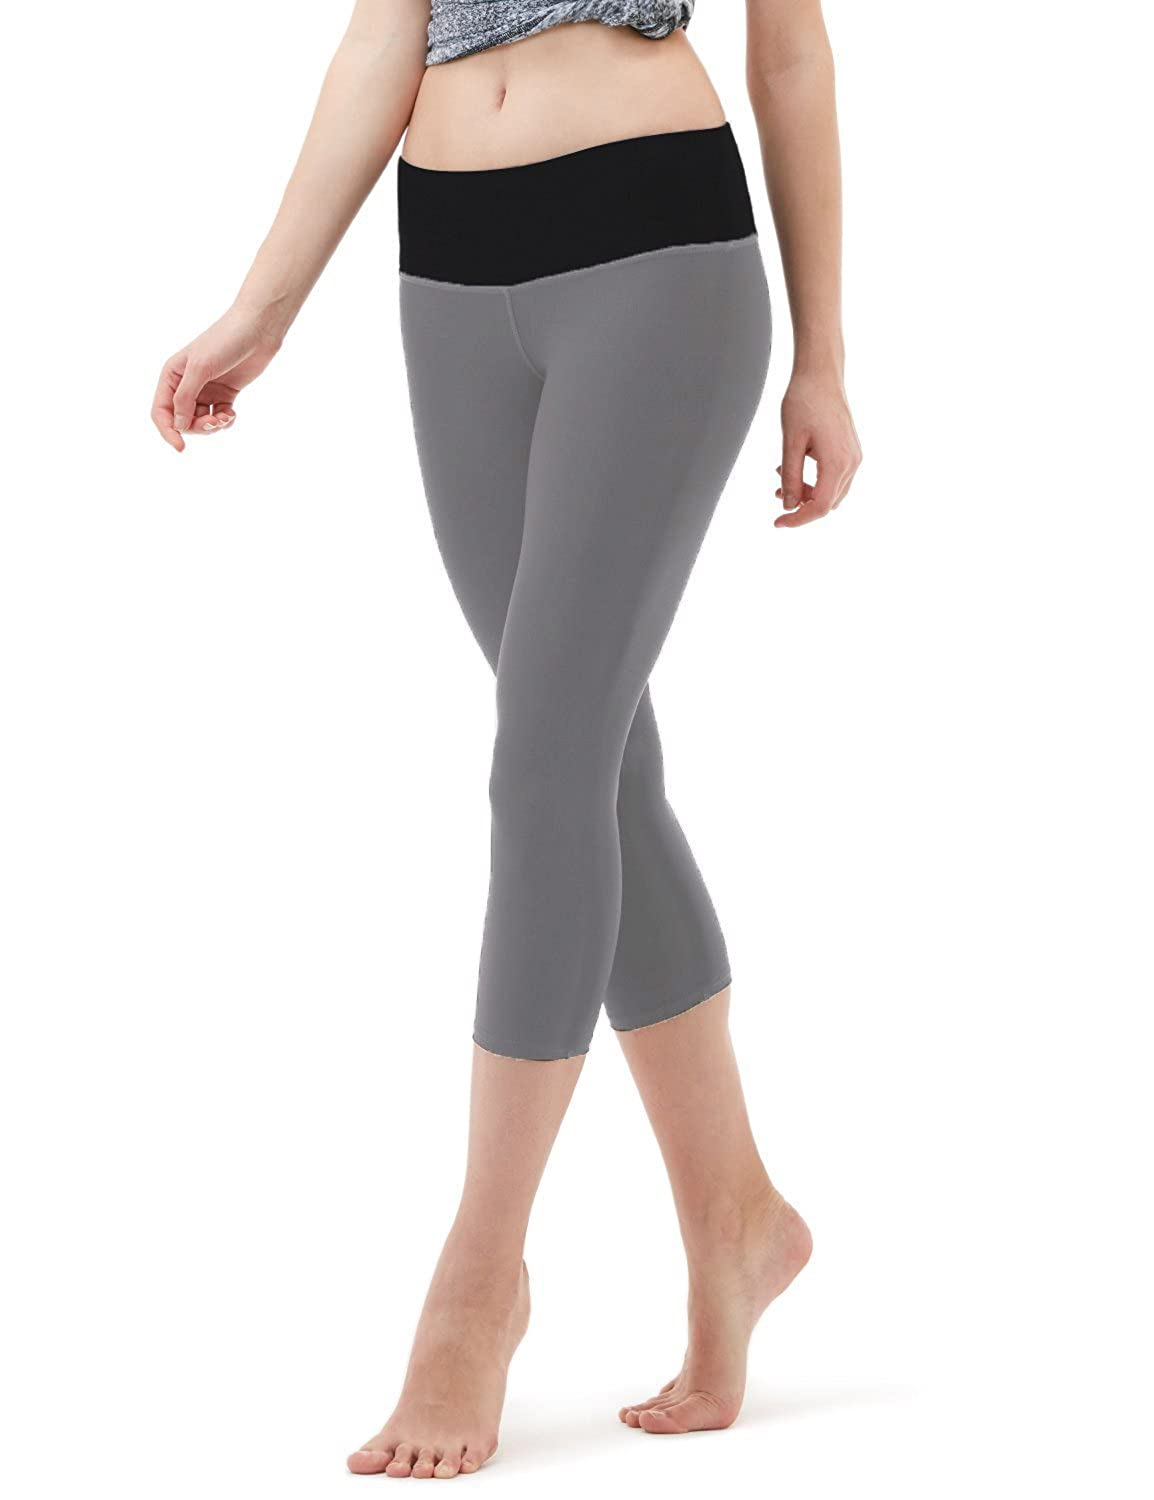 dd8d2149bfe558 STRONG ELASTIC WAISTBAND : Women everywhere love our capr leggings because  they feature a strong elastic waistband that delivers a moderate level of  ...